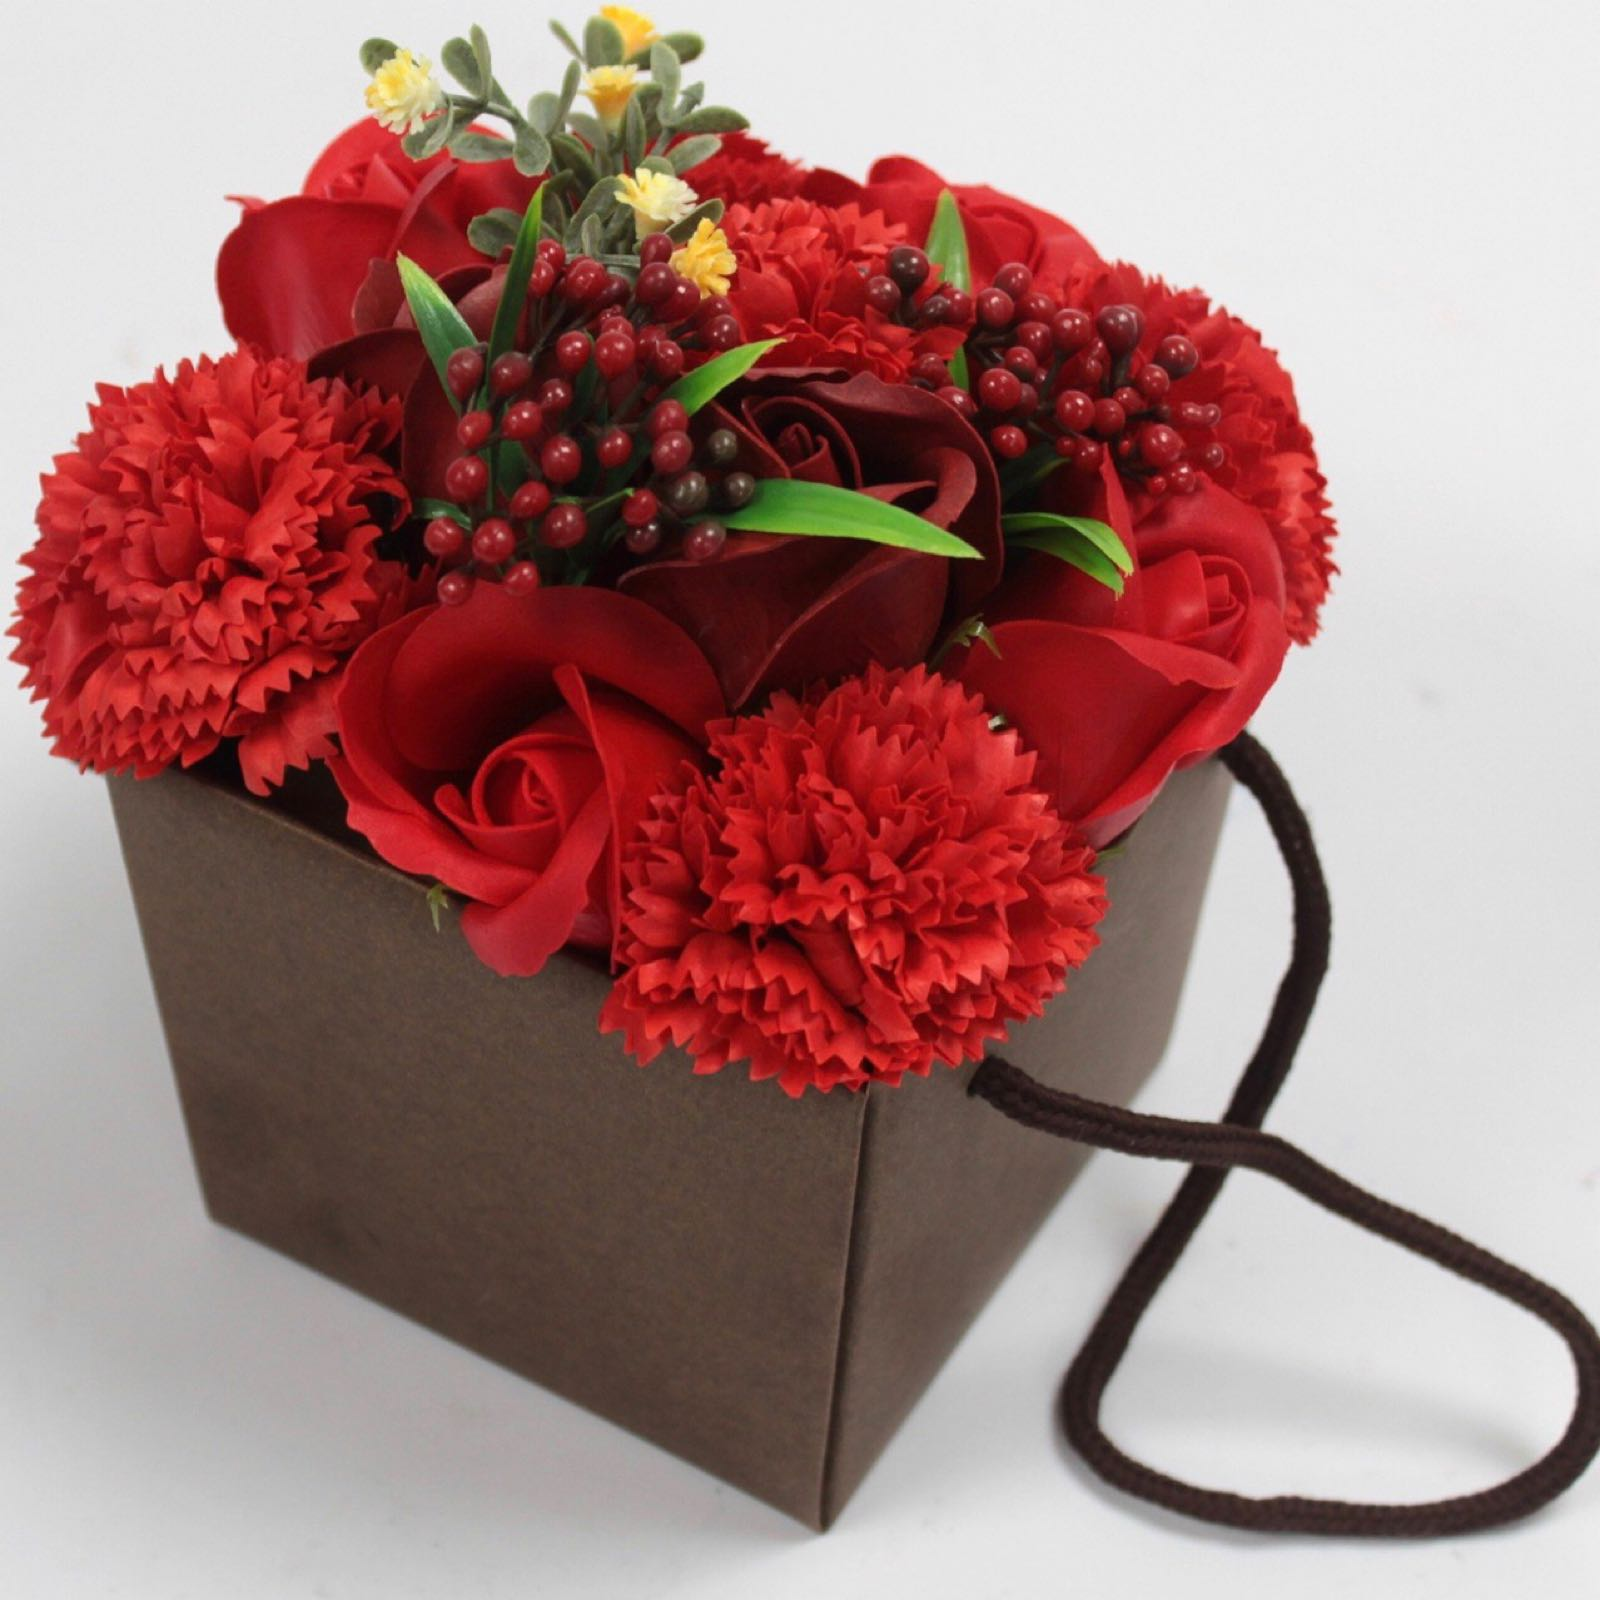 Soap Flower Bouquet - Red Rose & Carnation (Was £13.50)